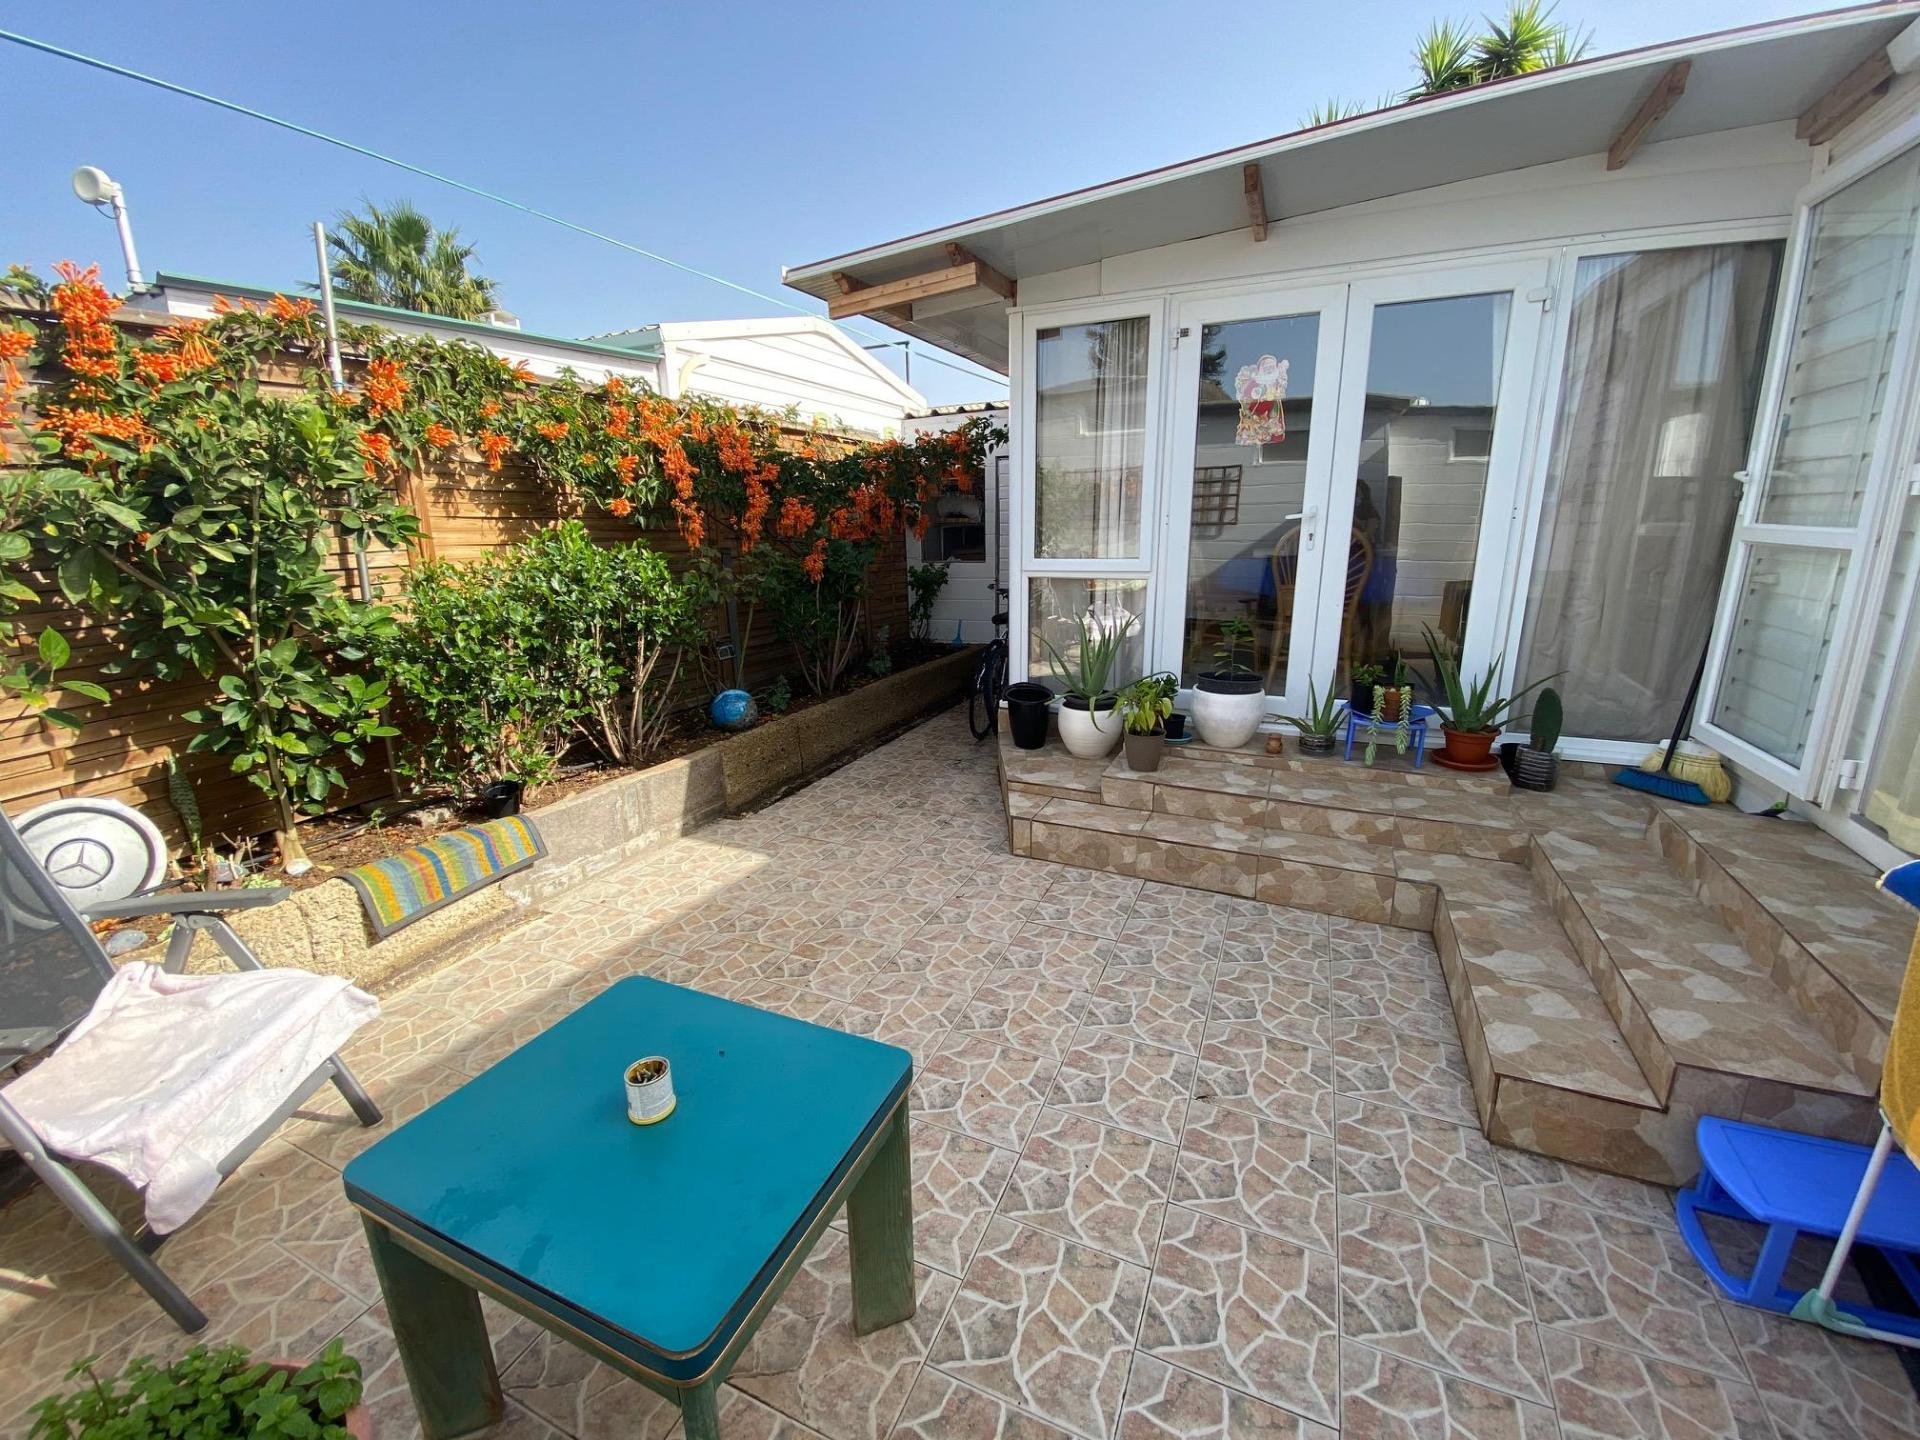 Cosy bungalow located in CAMPING NAUTA, 5-10 minutes driving from the village of Las .... more info